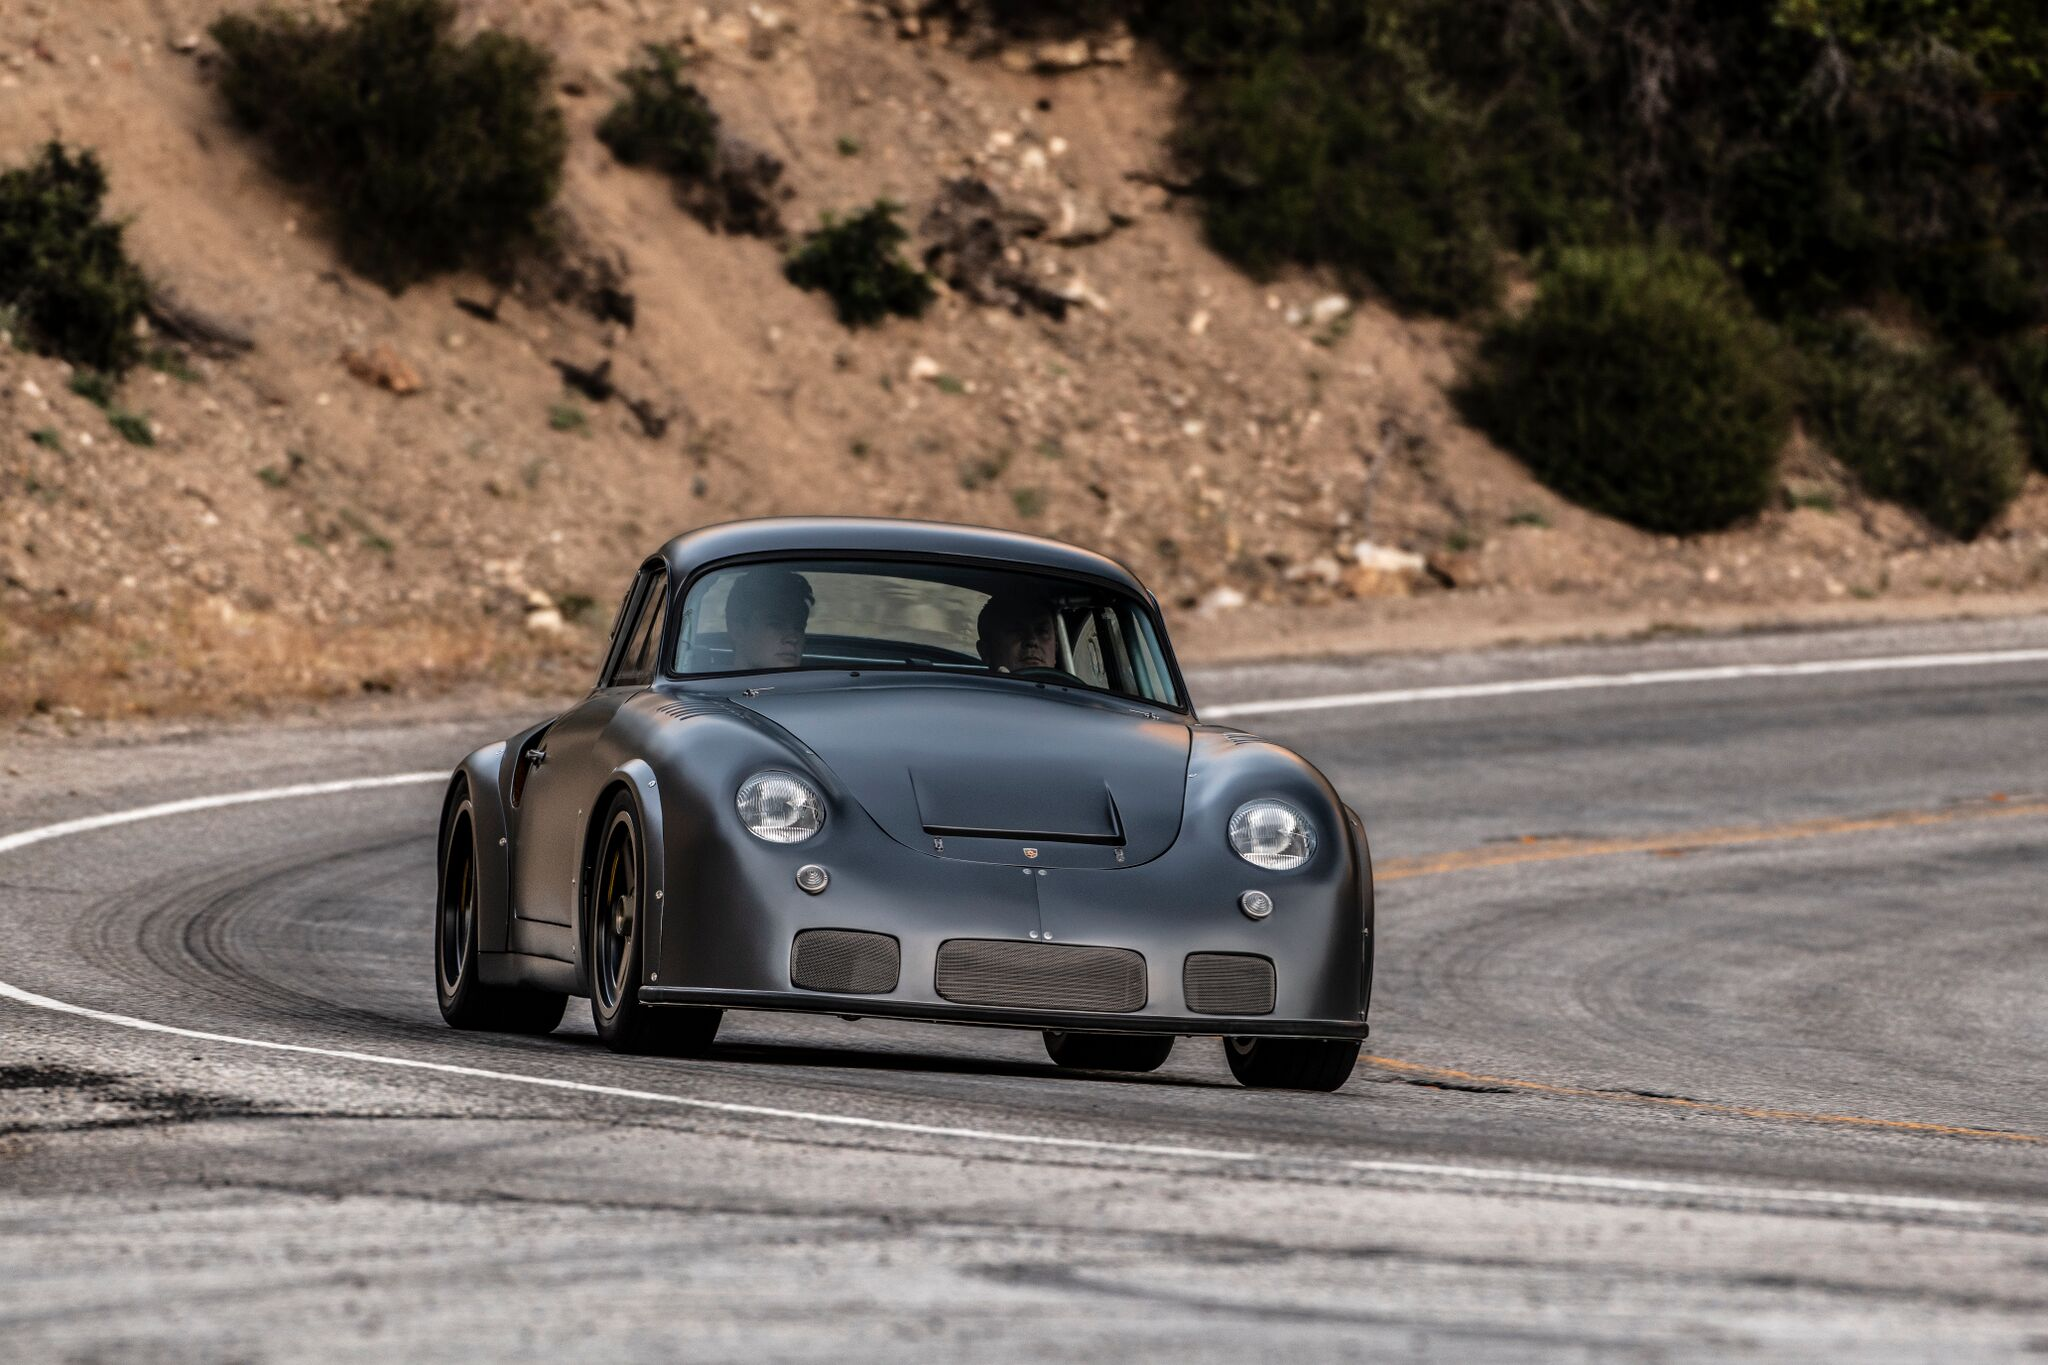 Porsche-356-RSR-Outlaw-by-Momo-and-Emory-motorsports-15